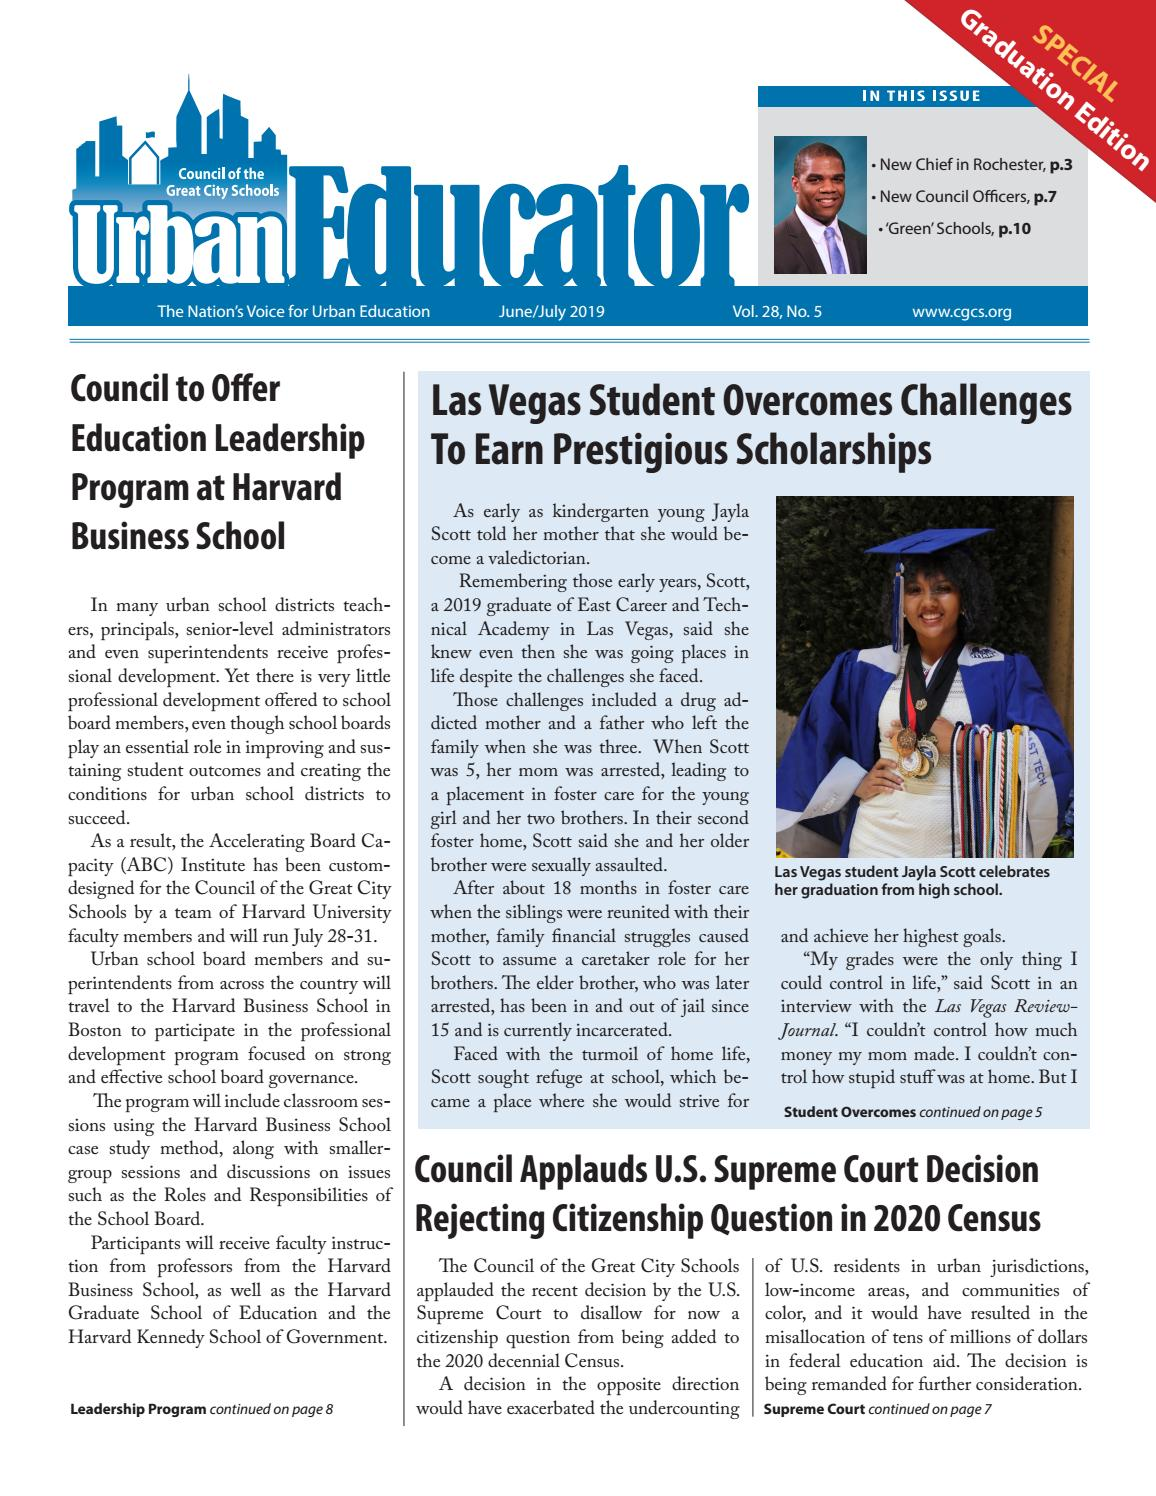 Urban Educator- June/July 2019 by Council of the Great City